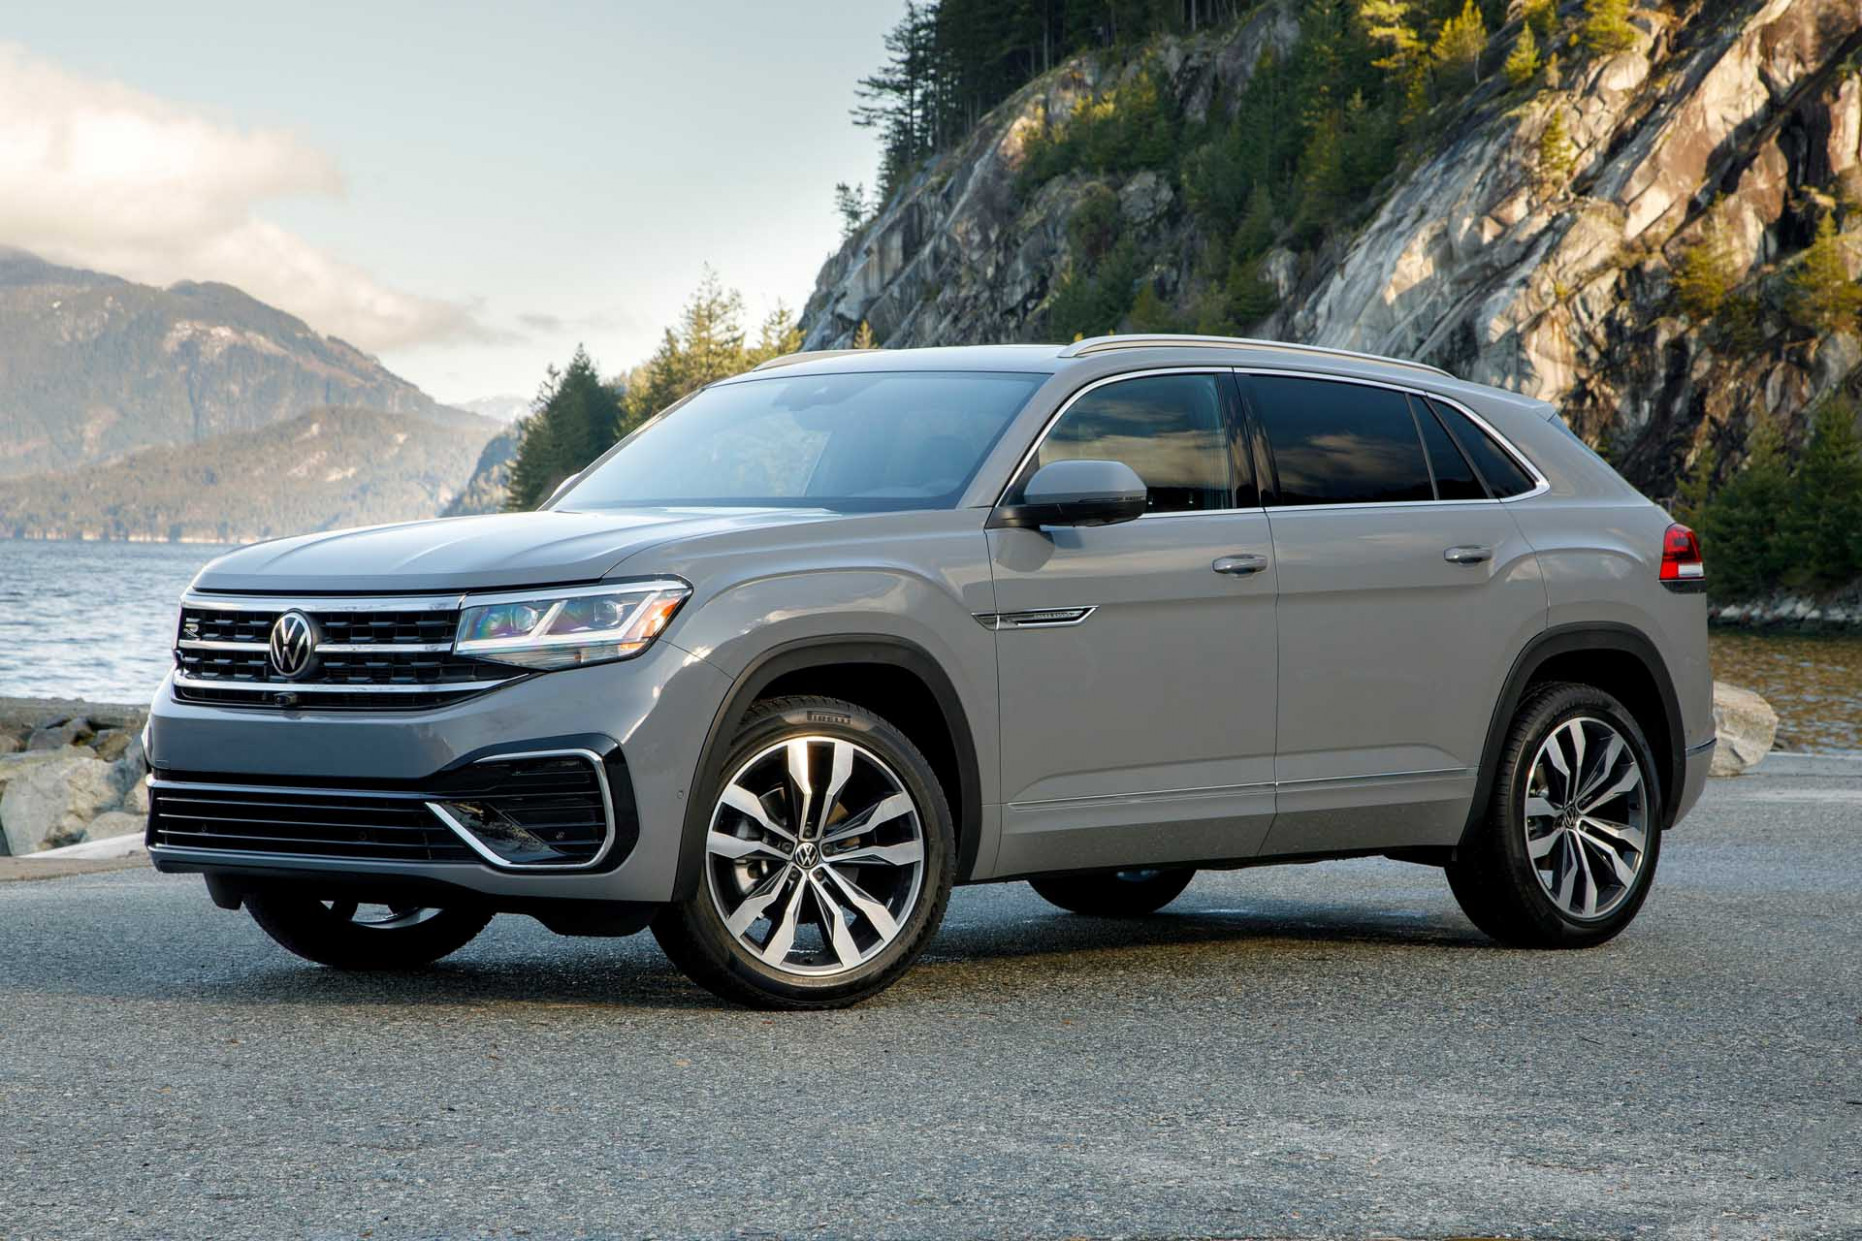 First drive: 11 VW Atlas Cross Sport crossover hits the middle in a ..